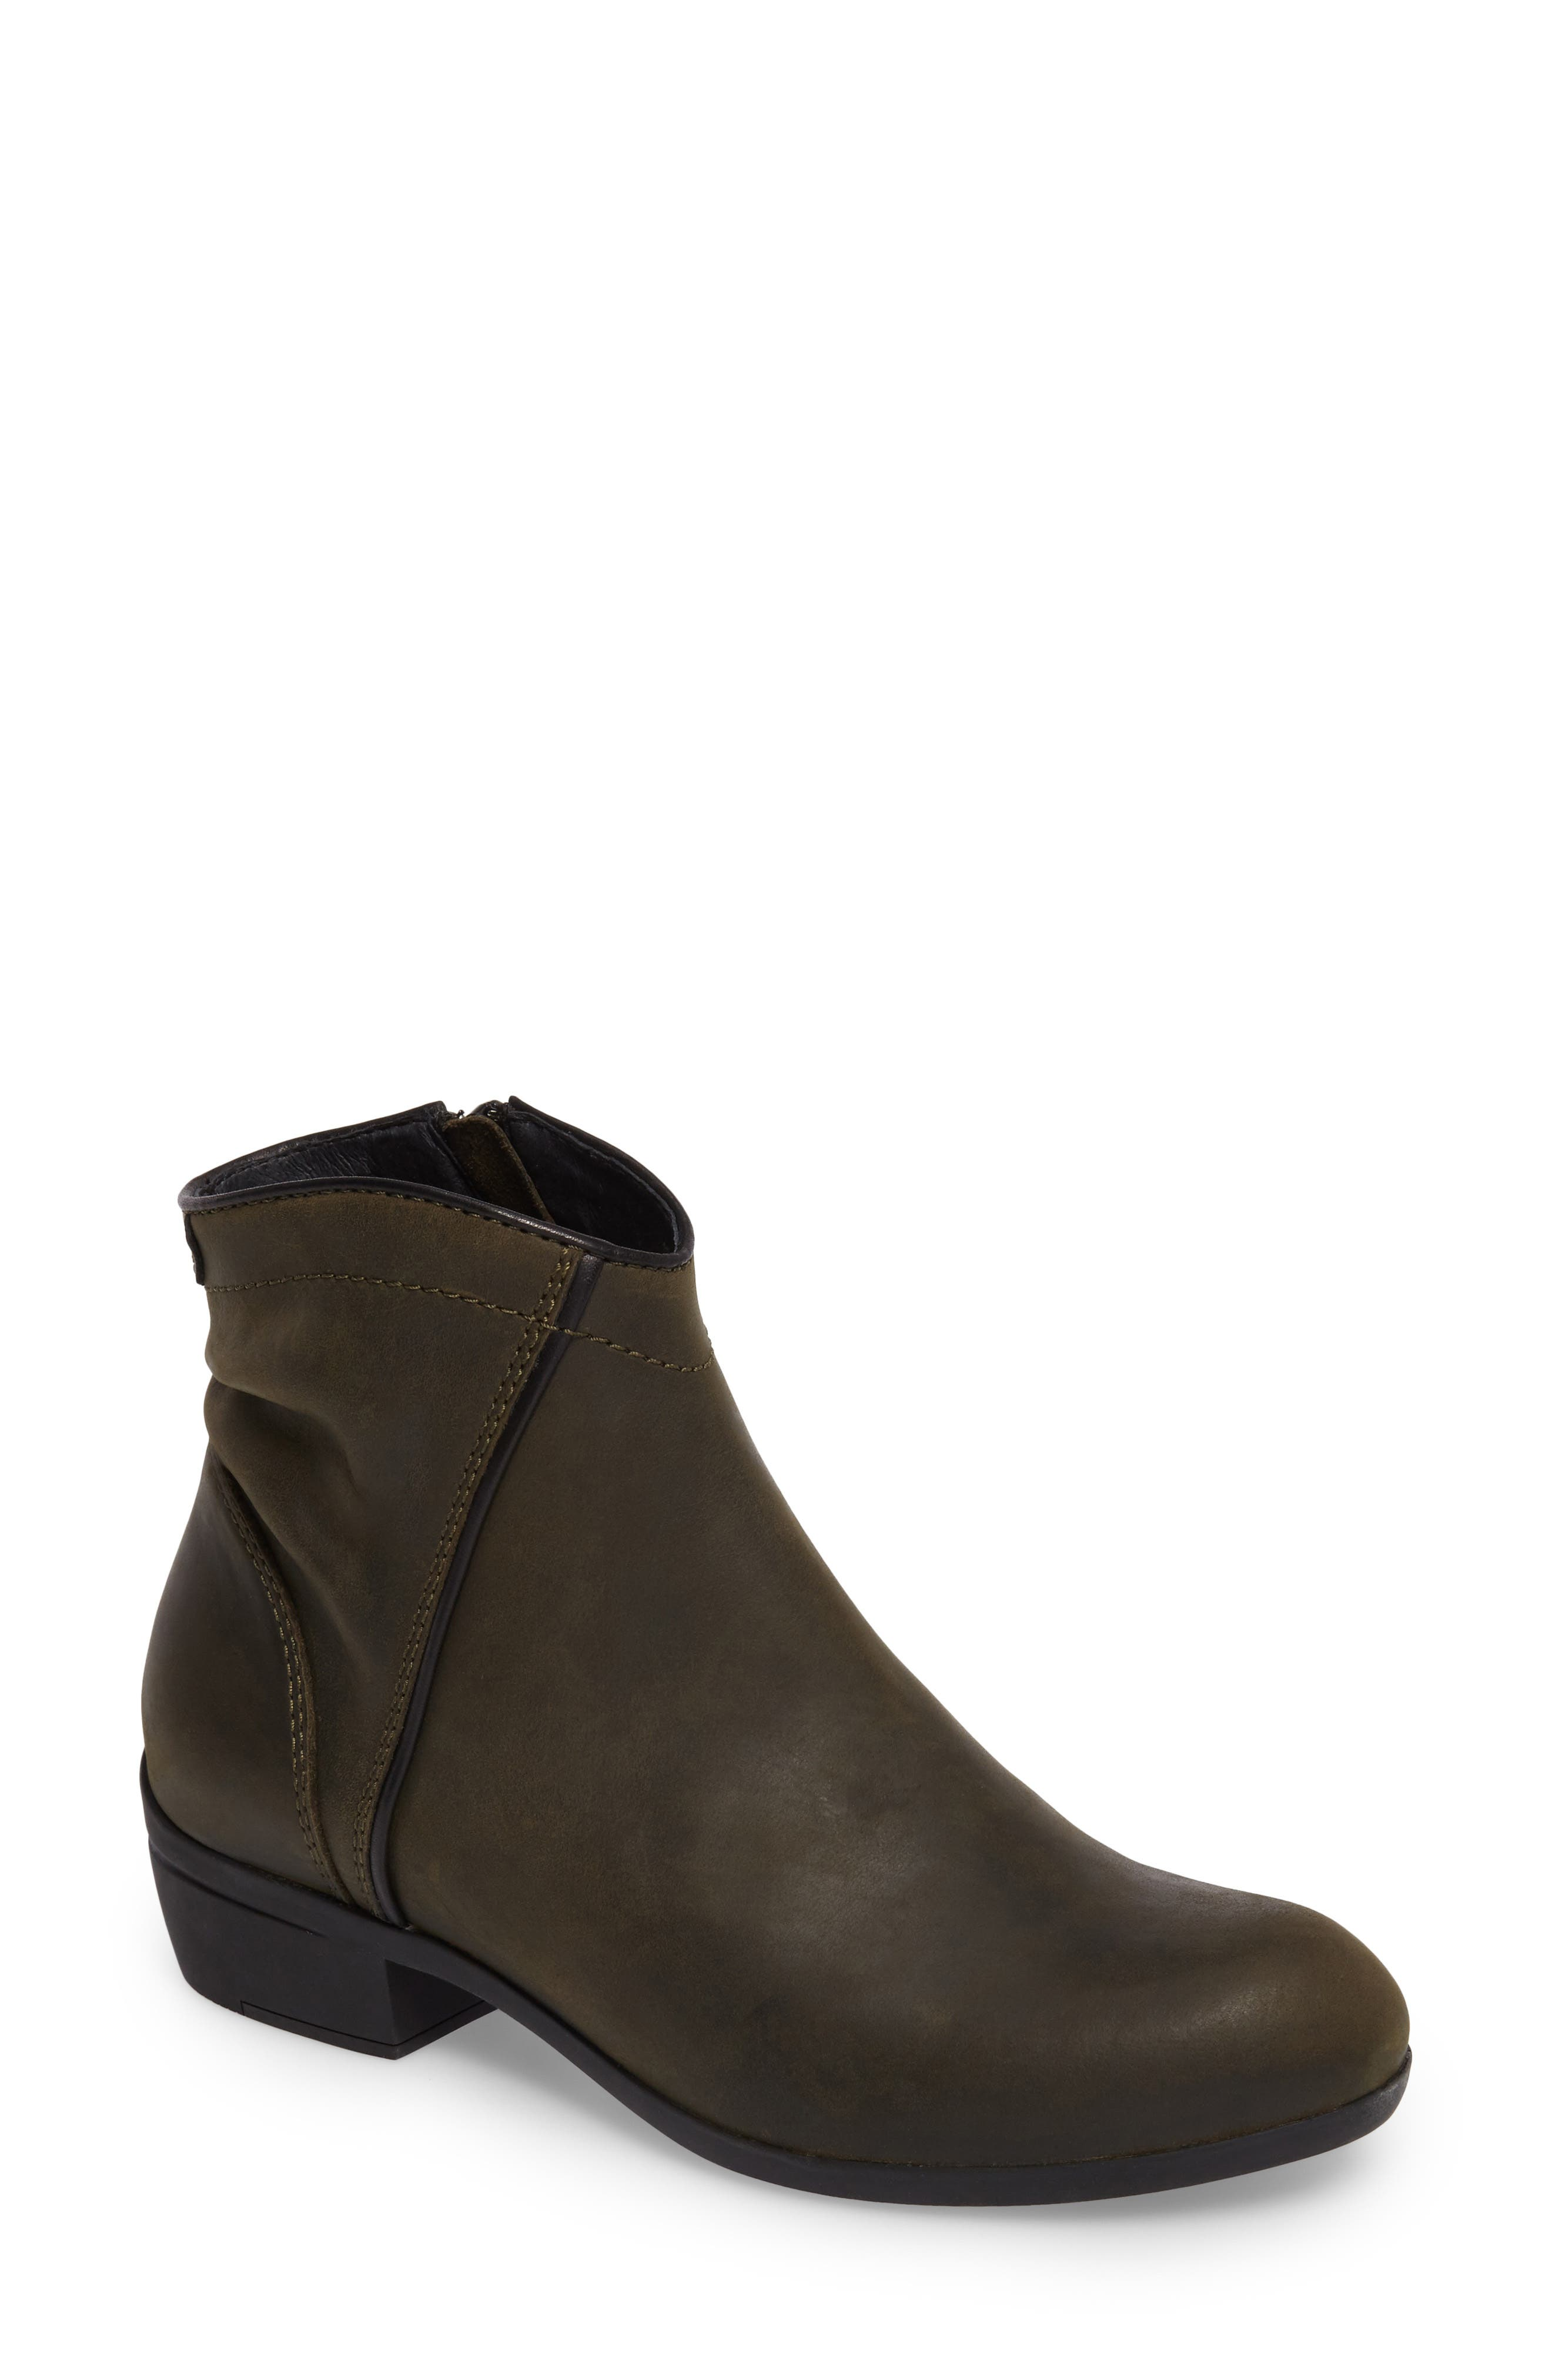 Alternate Image 1 Selected - Wolky Winchester Bootie (Women)